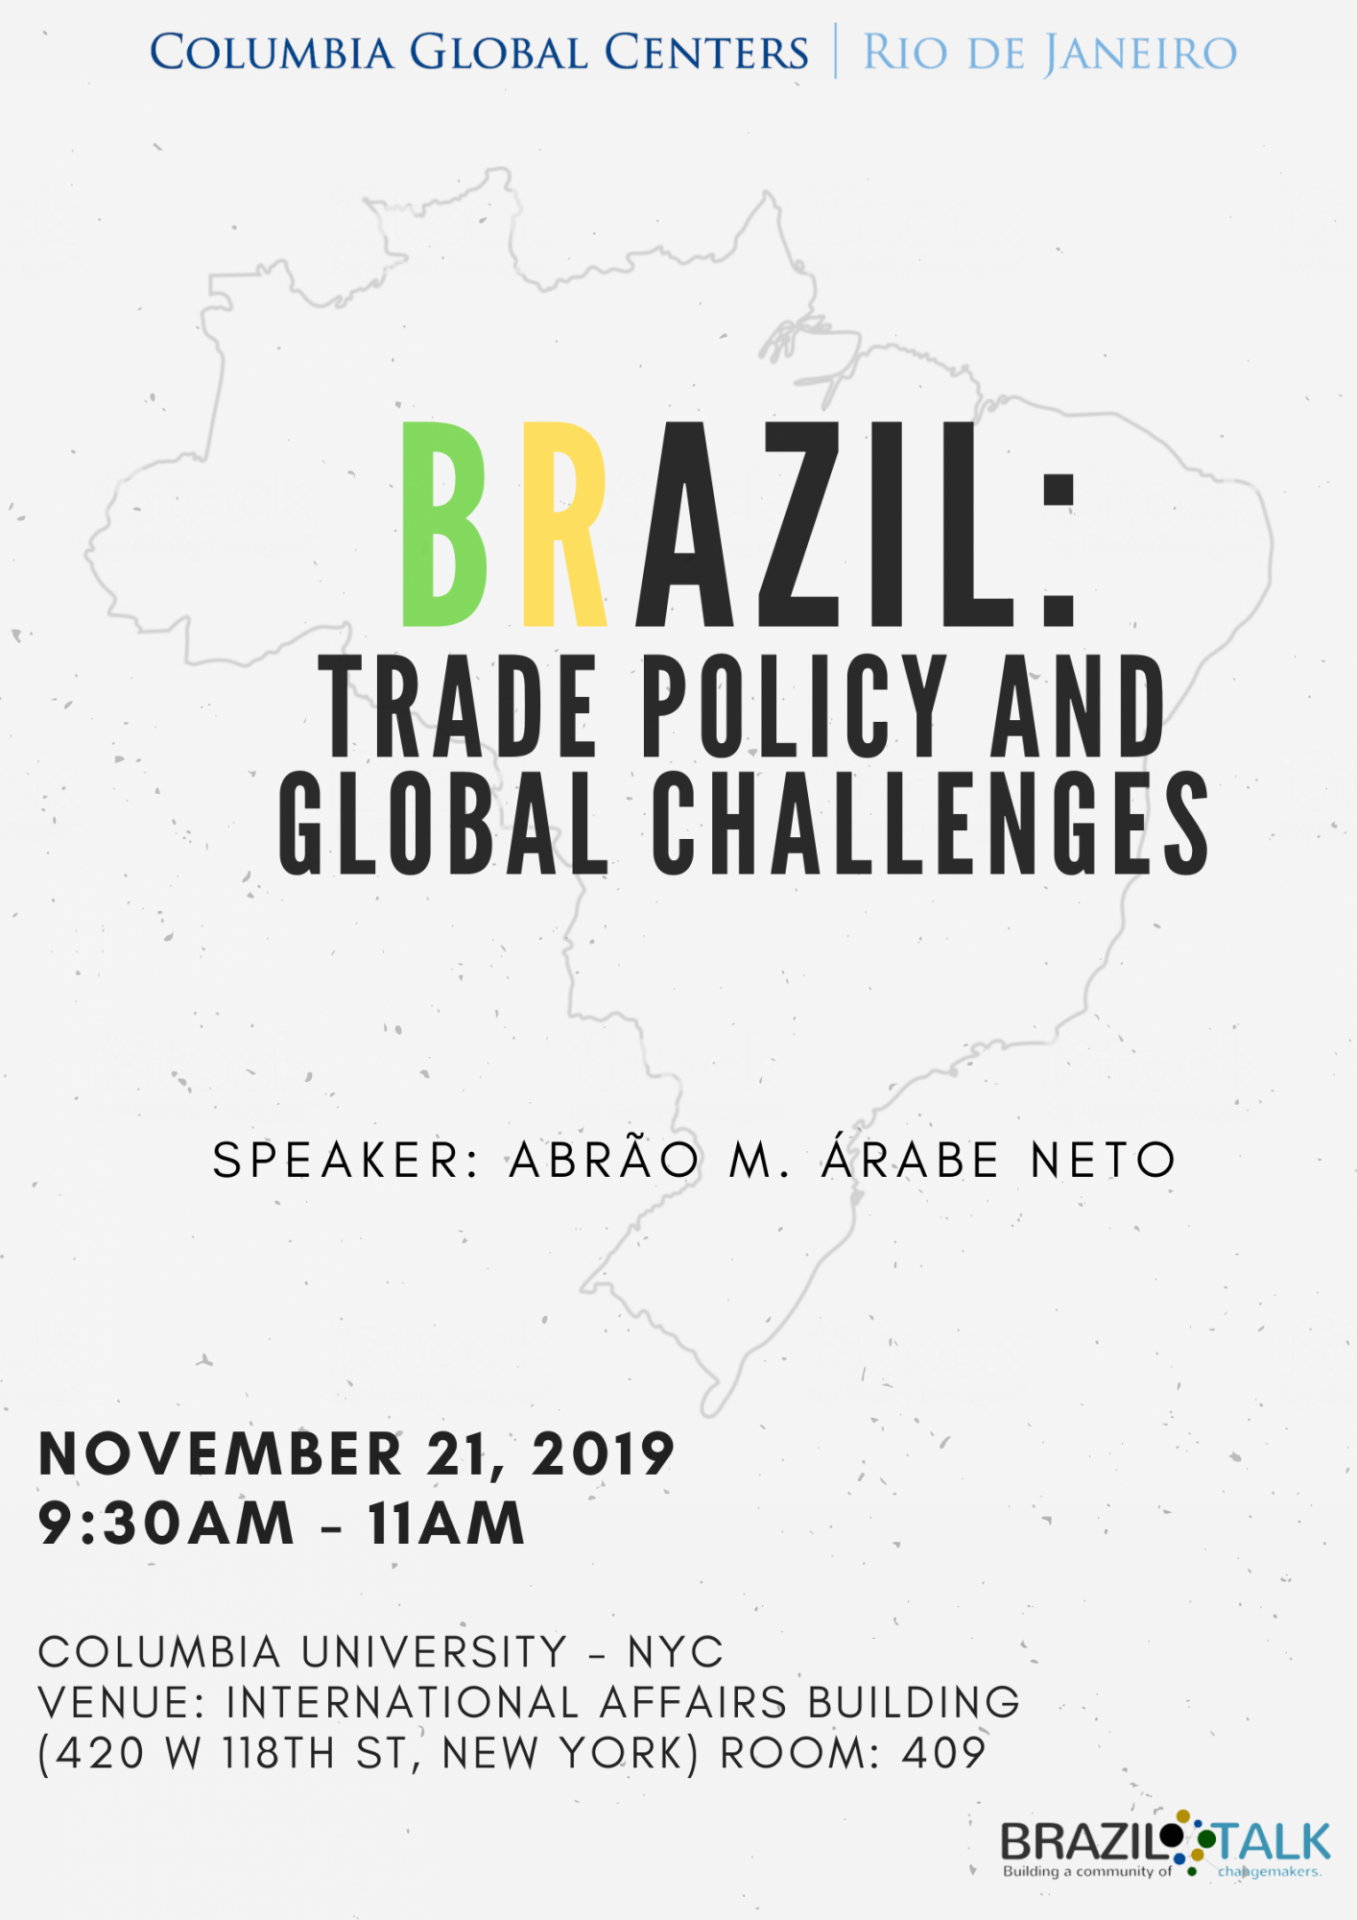 Brazil: Trade Policy and Global Challenges